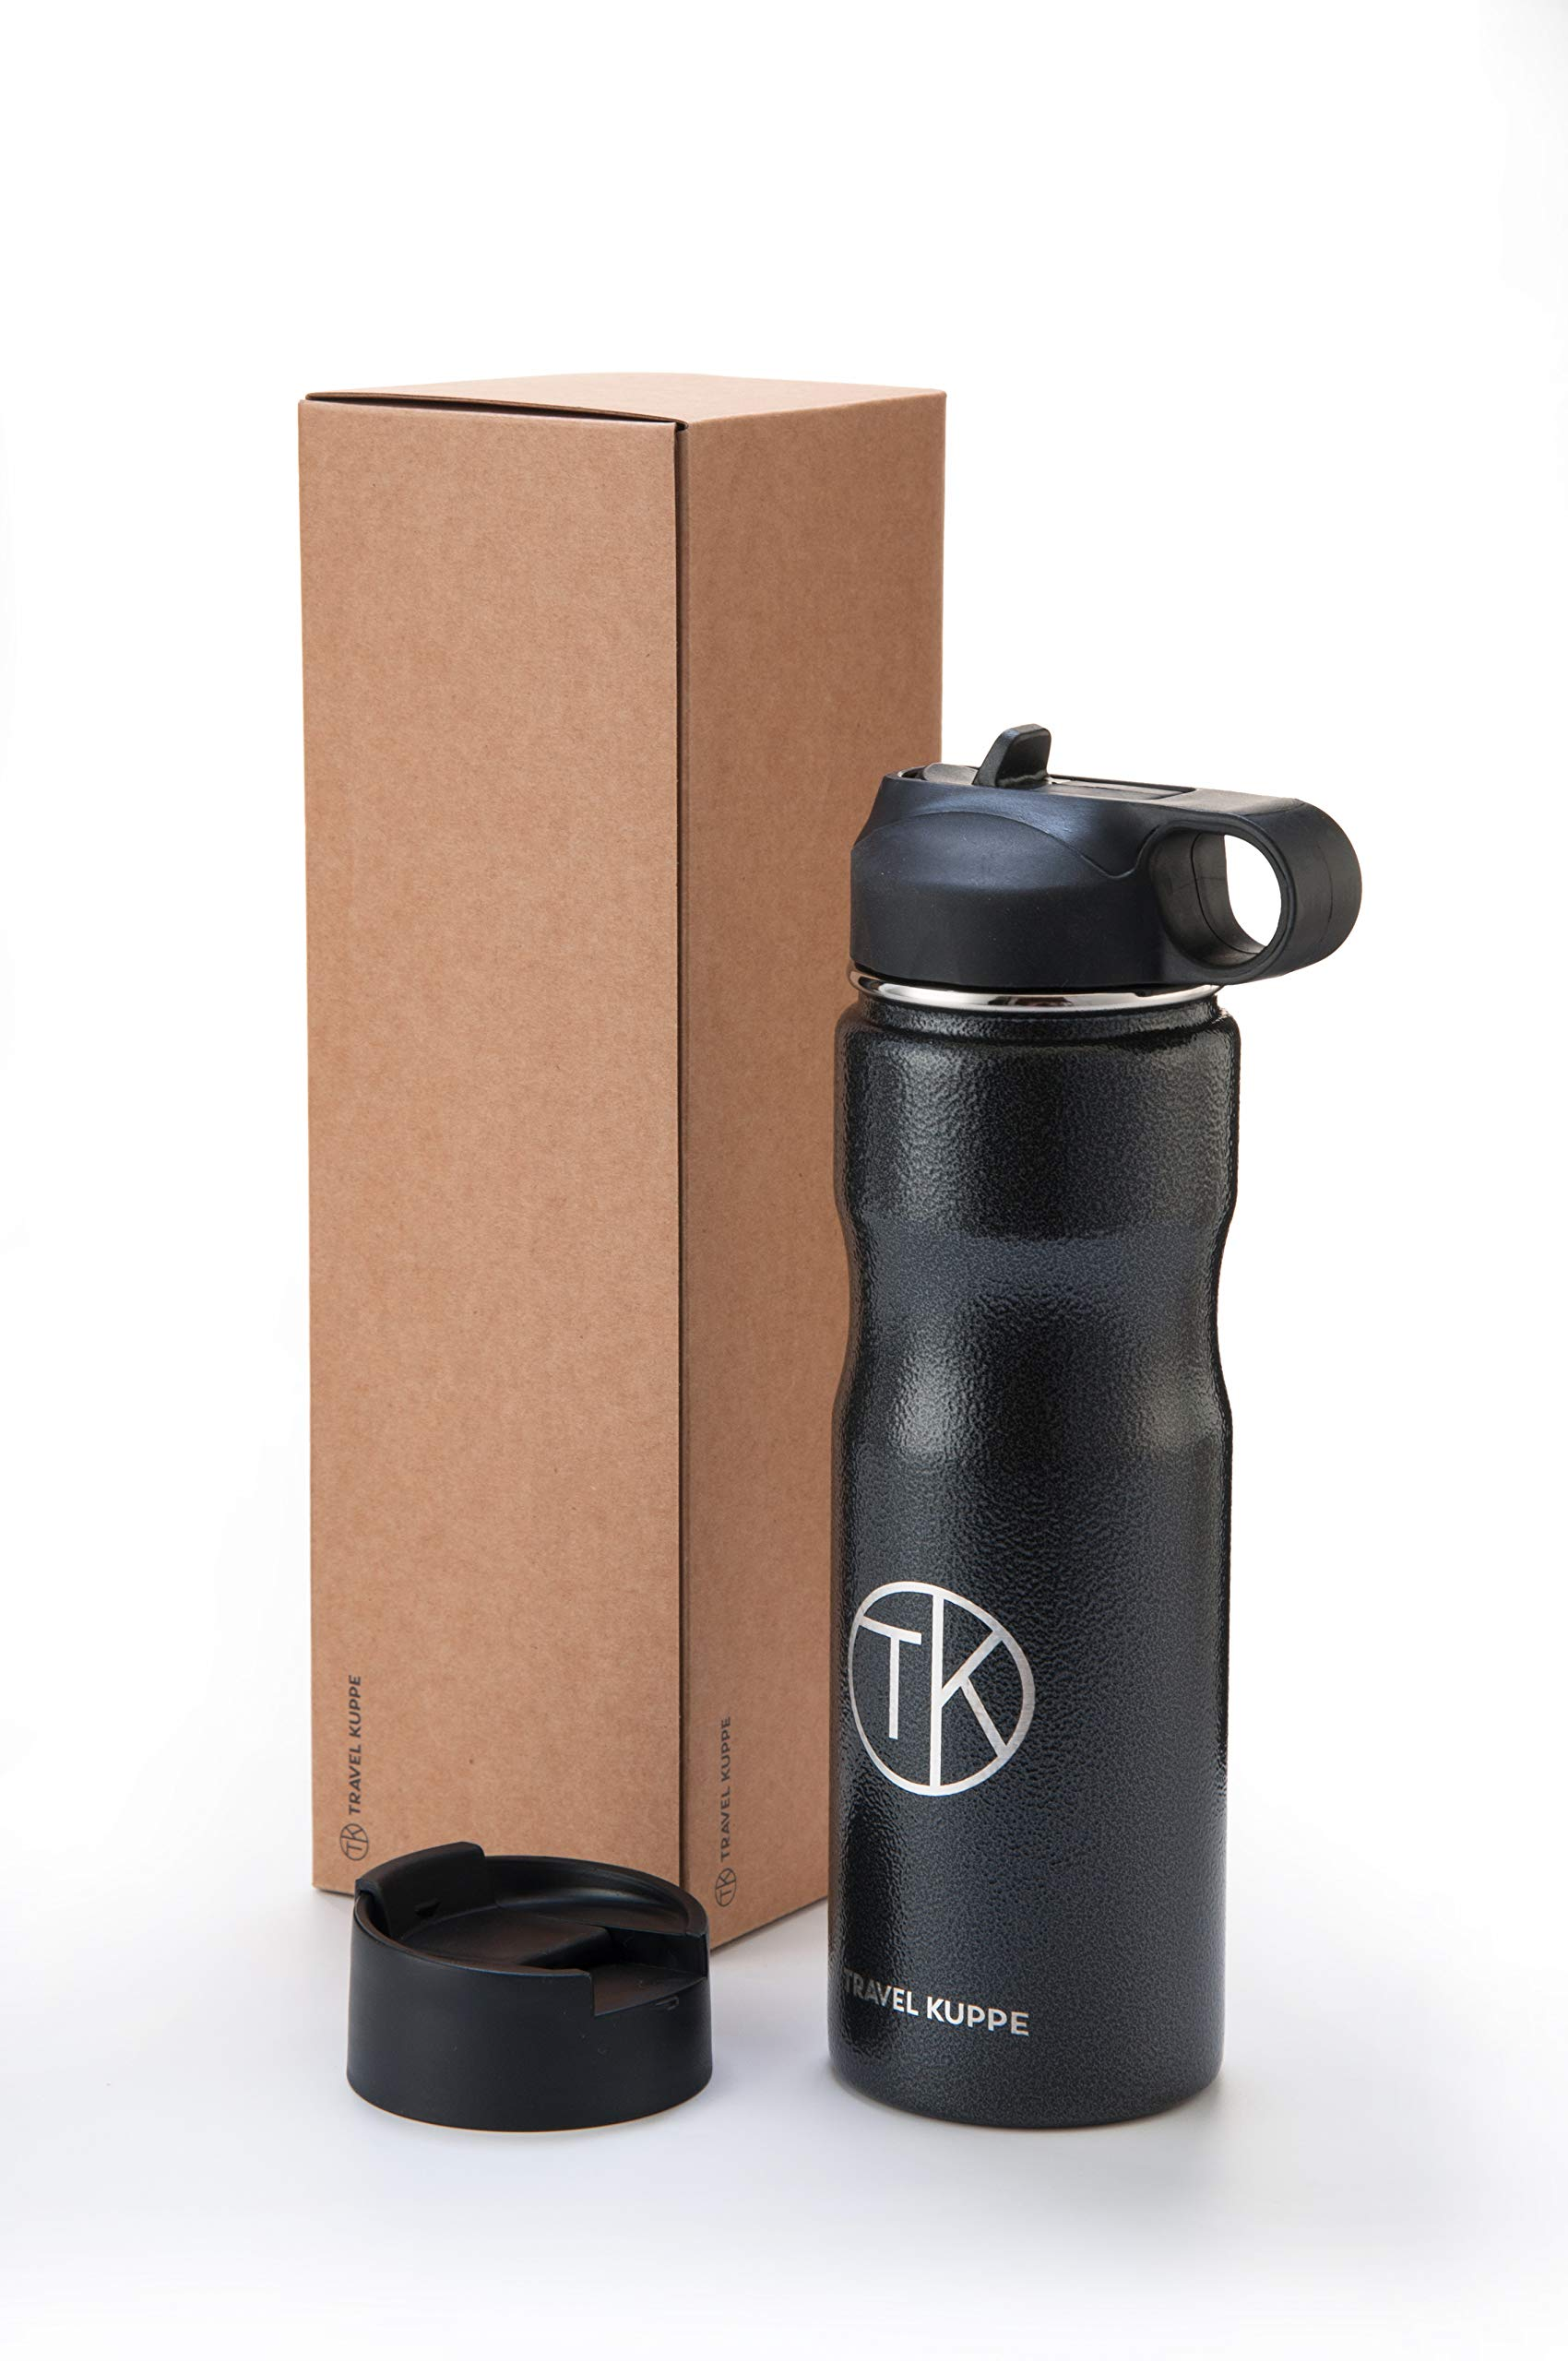 Travel Kuppe Vacuum Insulated Stainless Steel Cycling Sports Water Bottle, Includes Both Straw and Sip Lid by Travel Kuppe (Image #2)